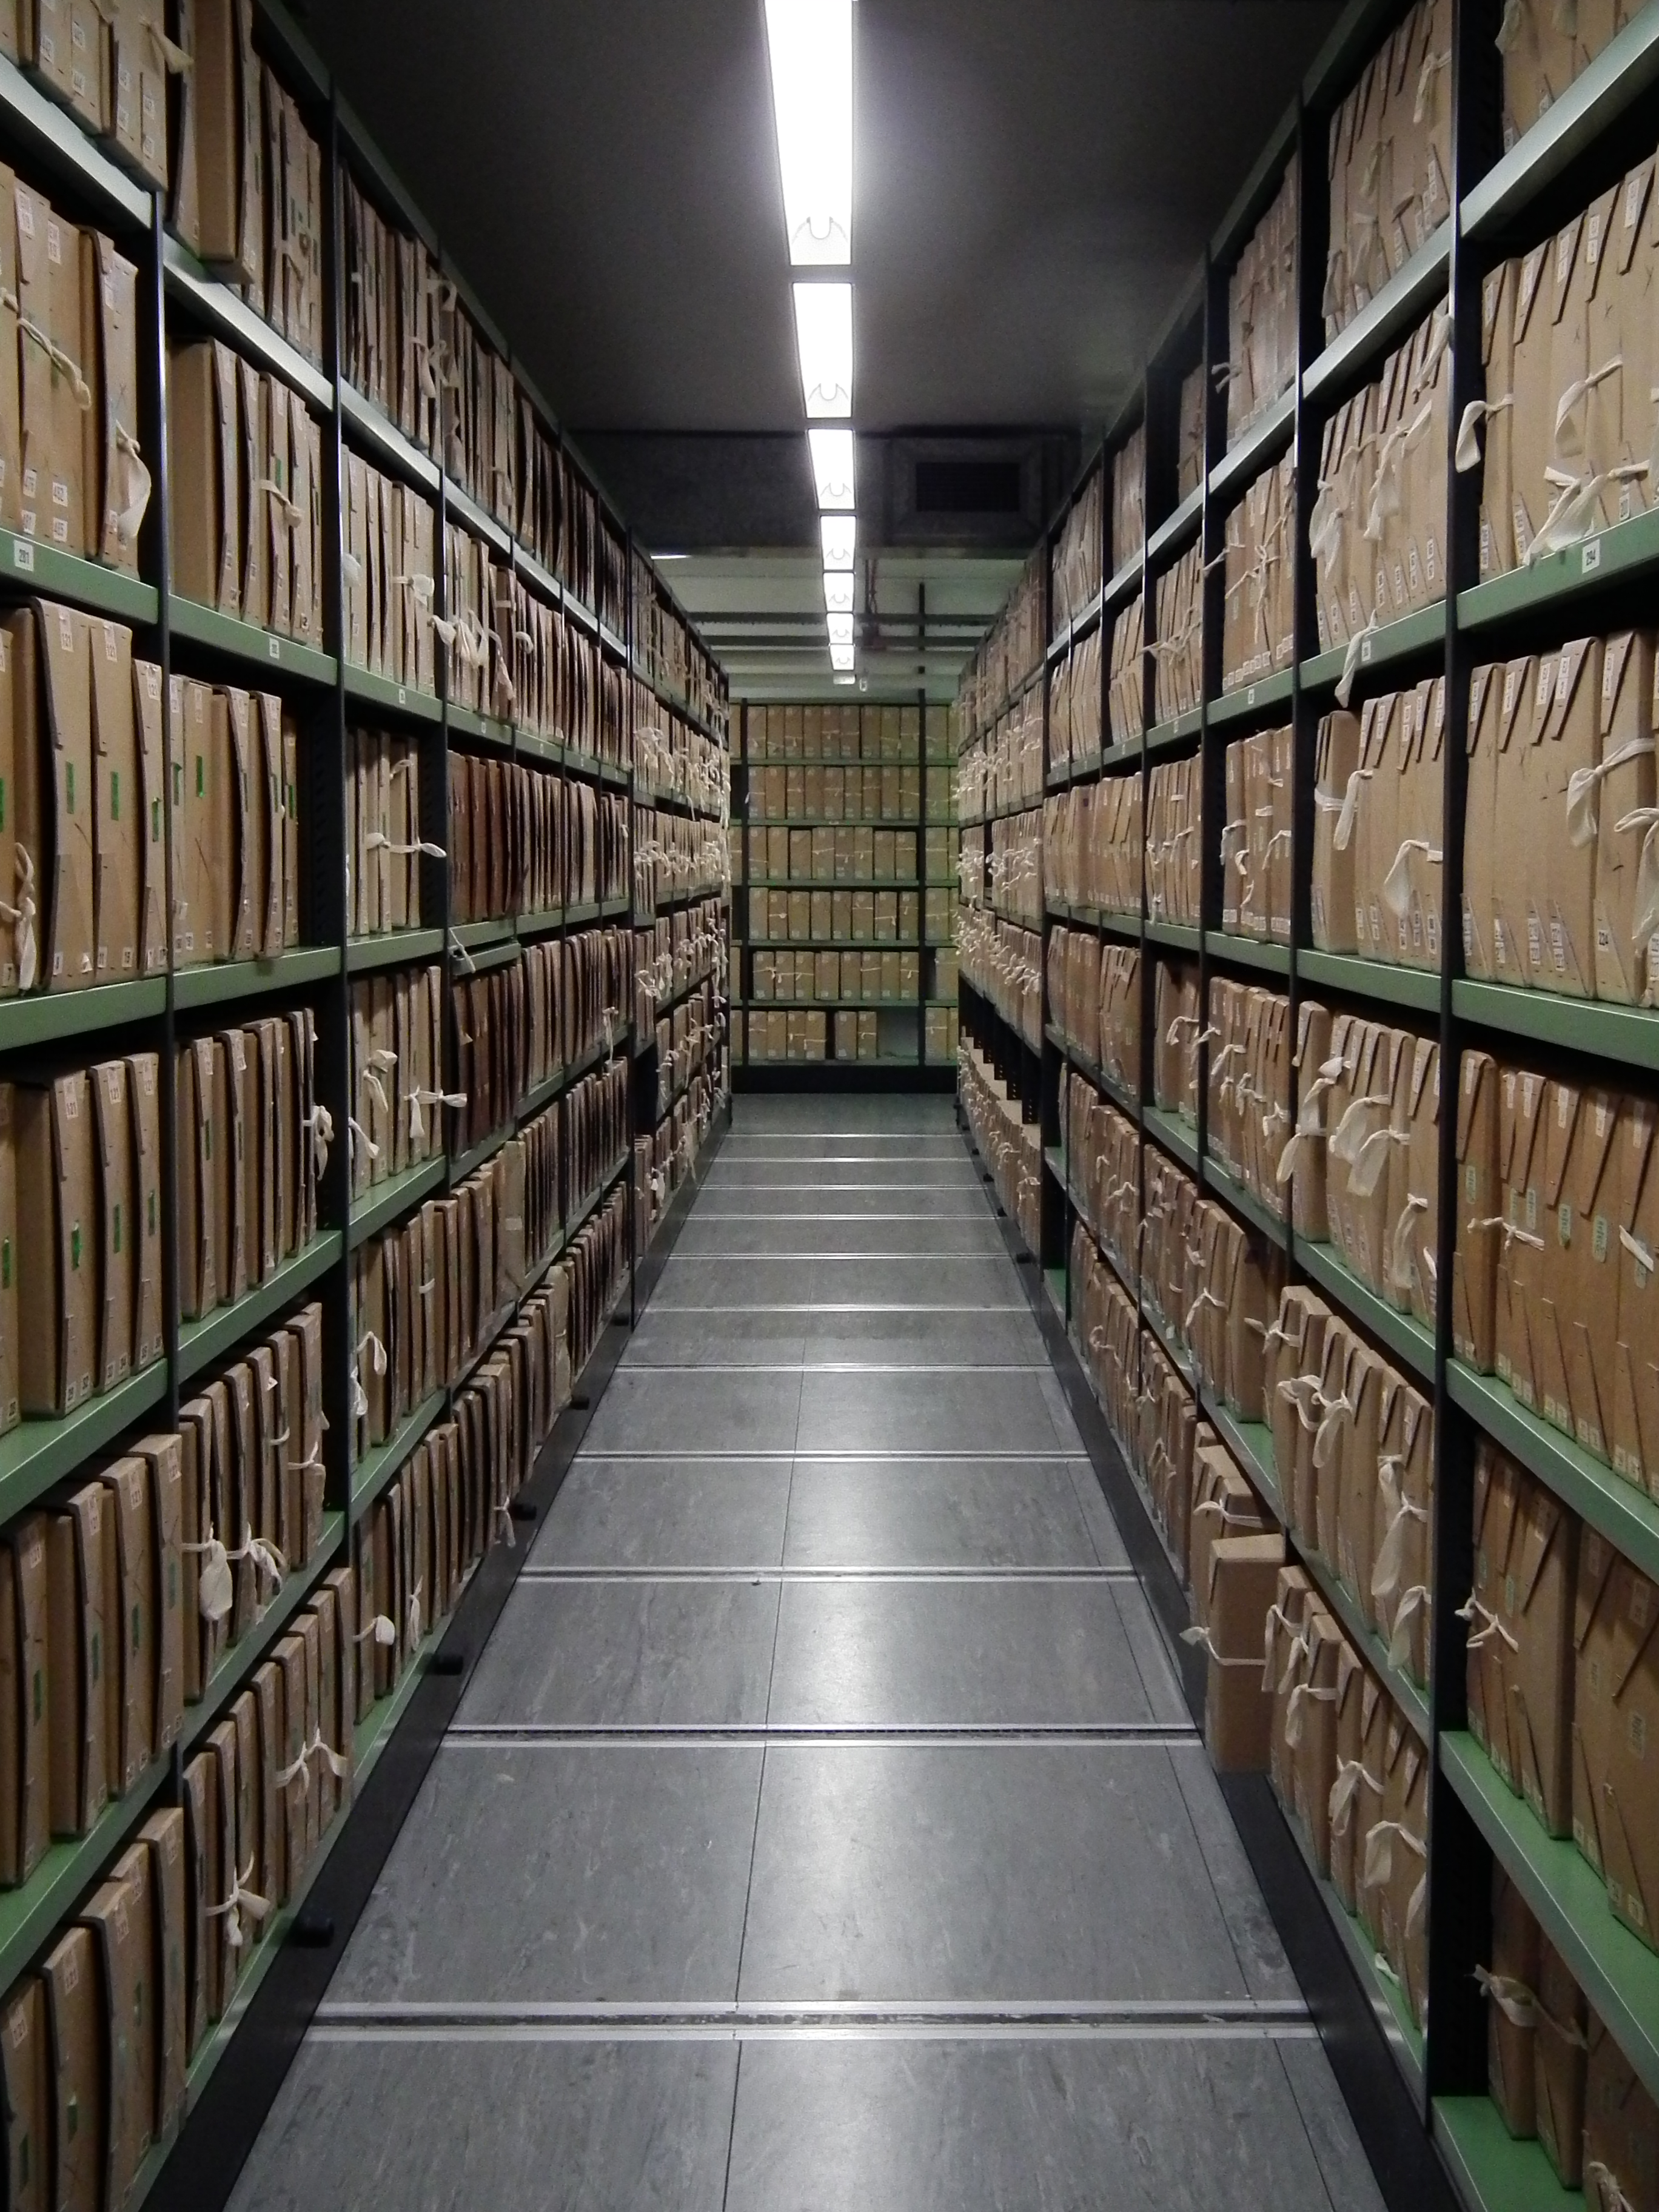 A walk through British history: Metro visits The National Archives